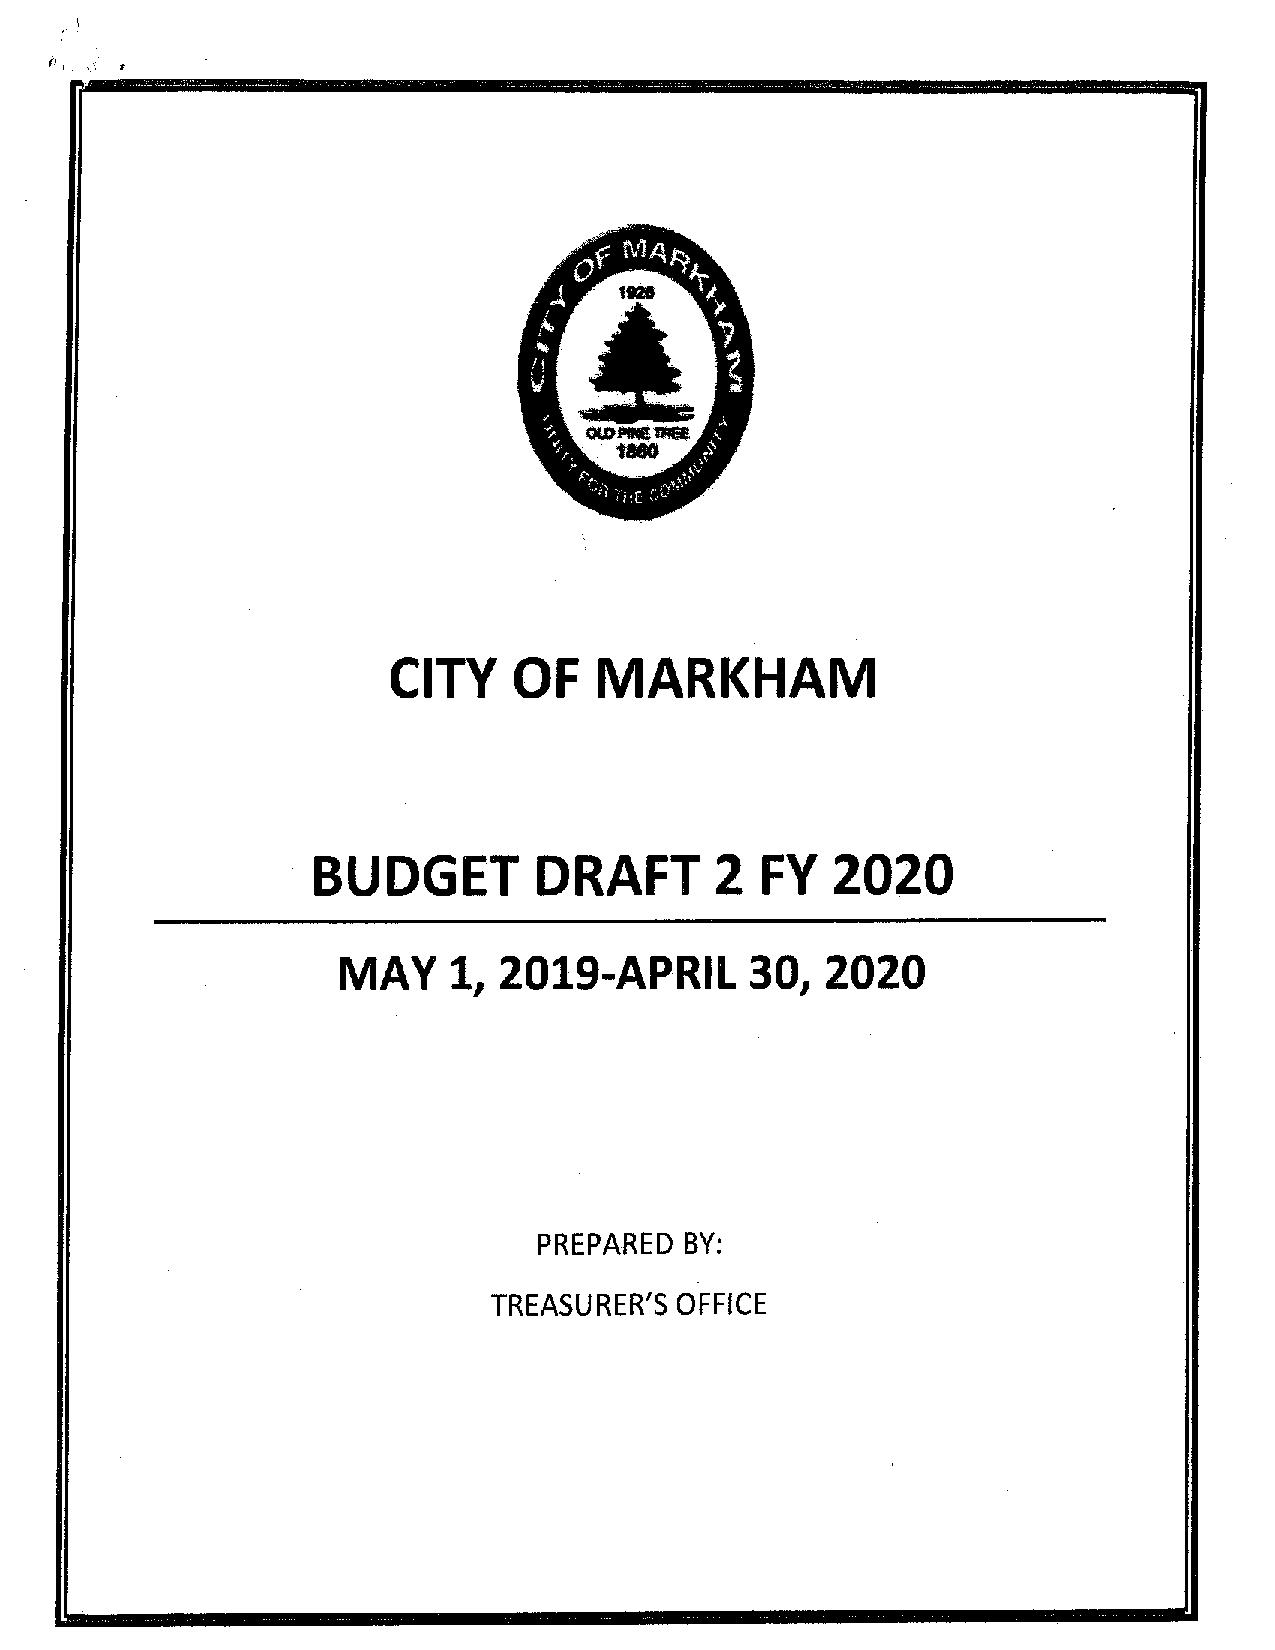 Budget Draft 2019-2020 Cover Image